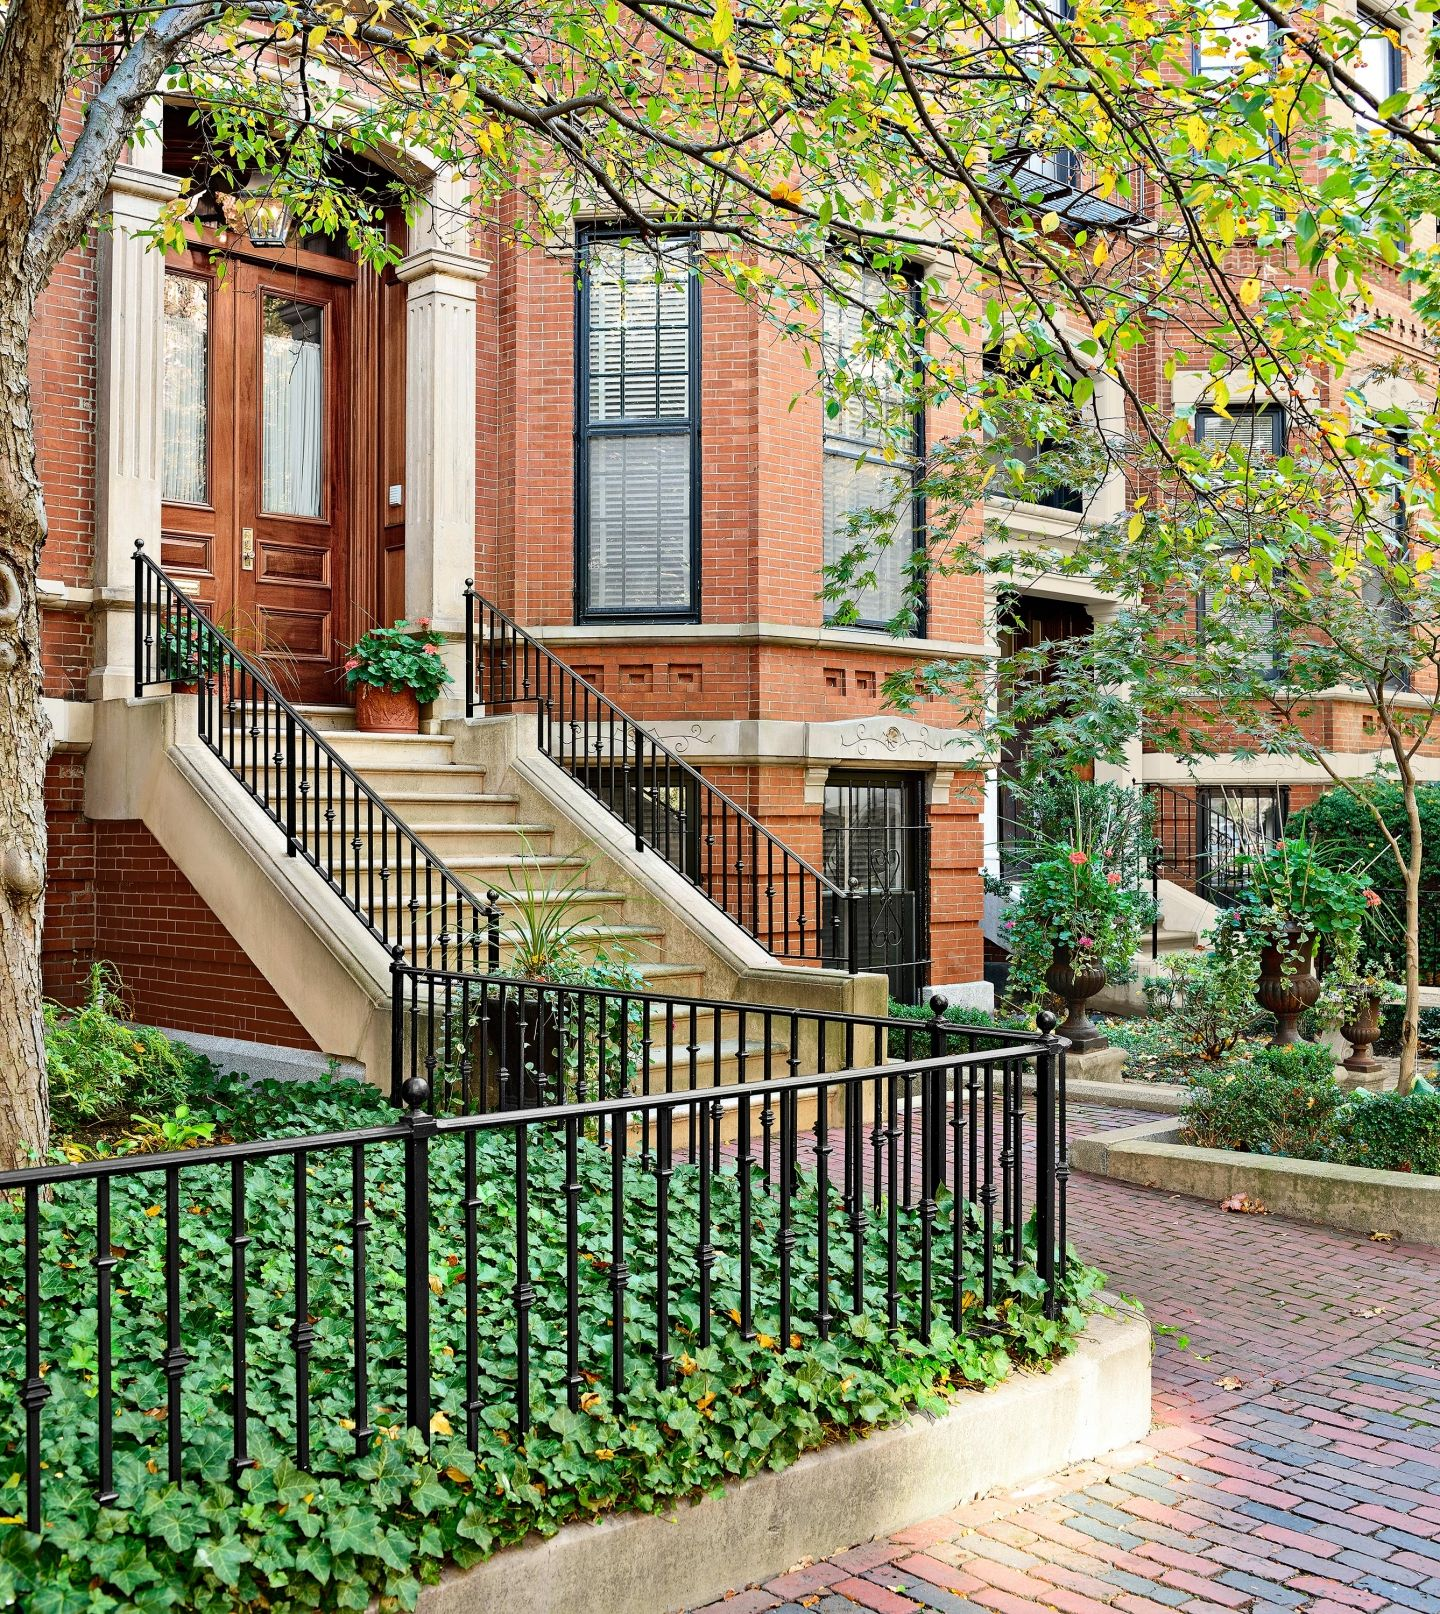 Mimicking wrought iron, steel or weatherproof aluminum are cheaper and more available options to achieve this classic Colonial look.